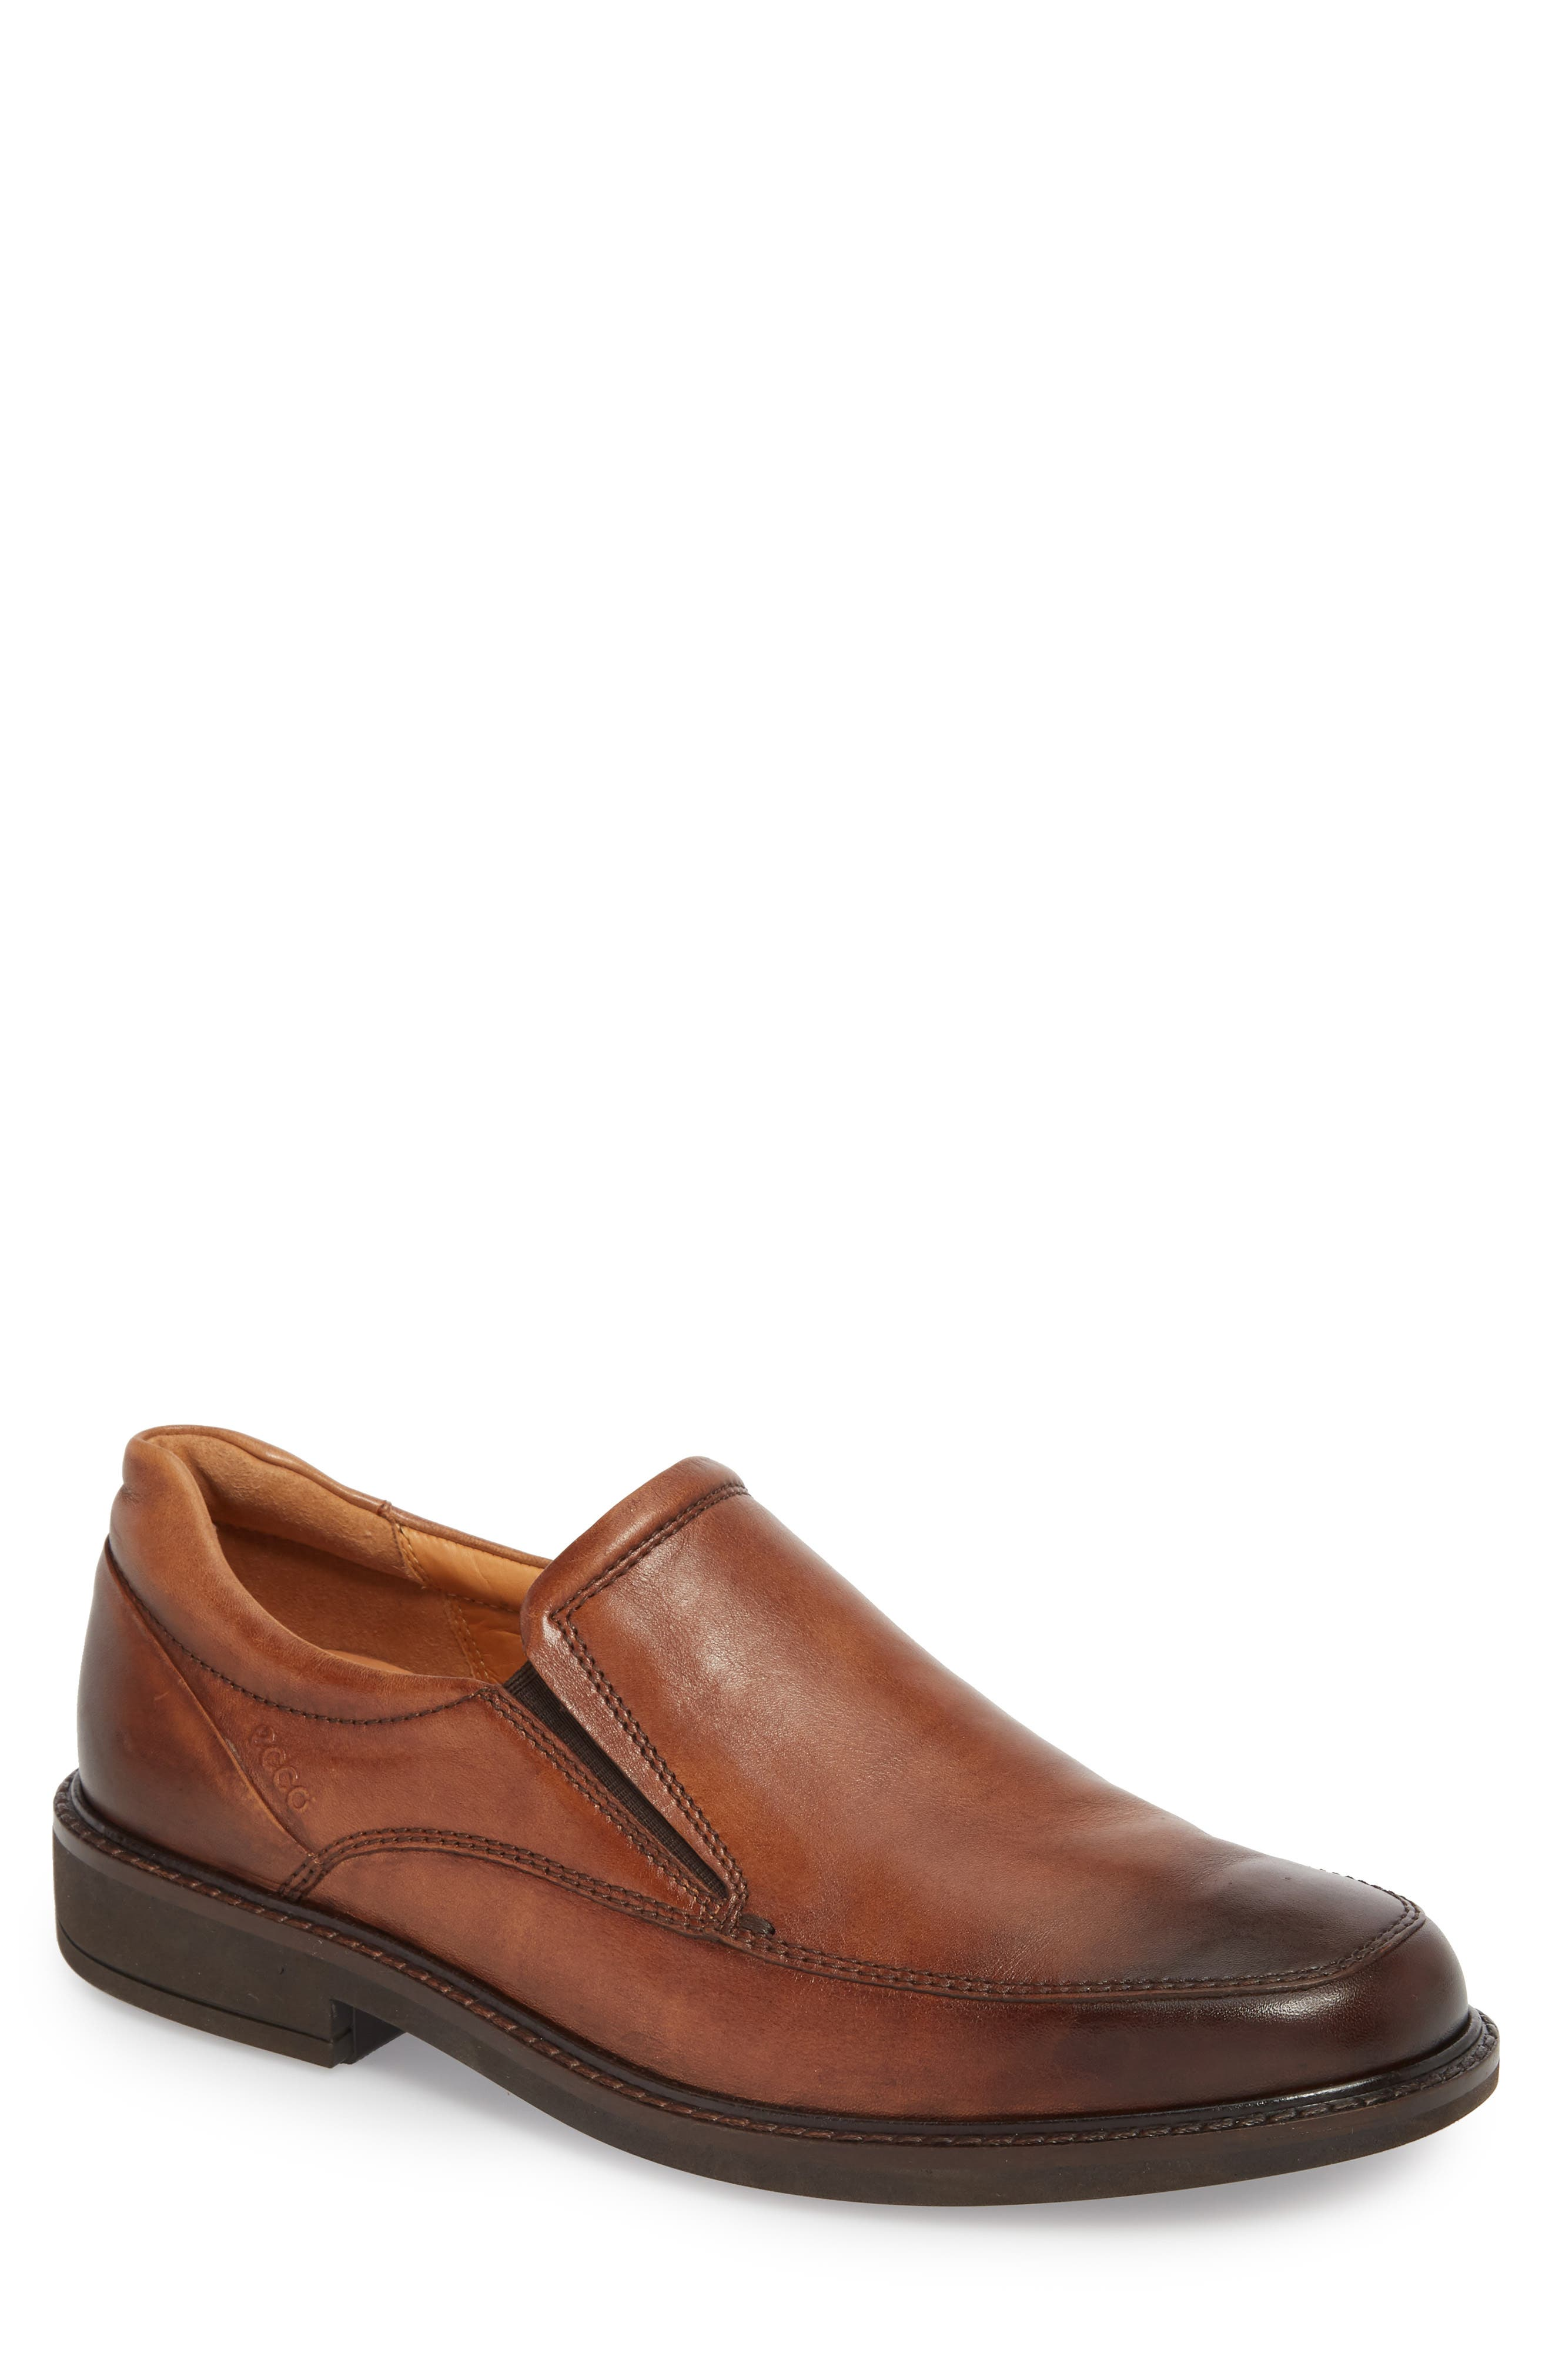 ECCO, Holton Slip-On, Main thumbnail 1, color, AMBER LEATHER